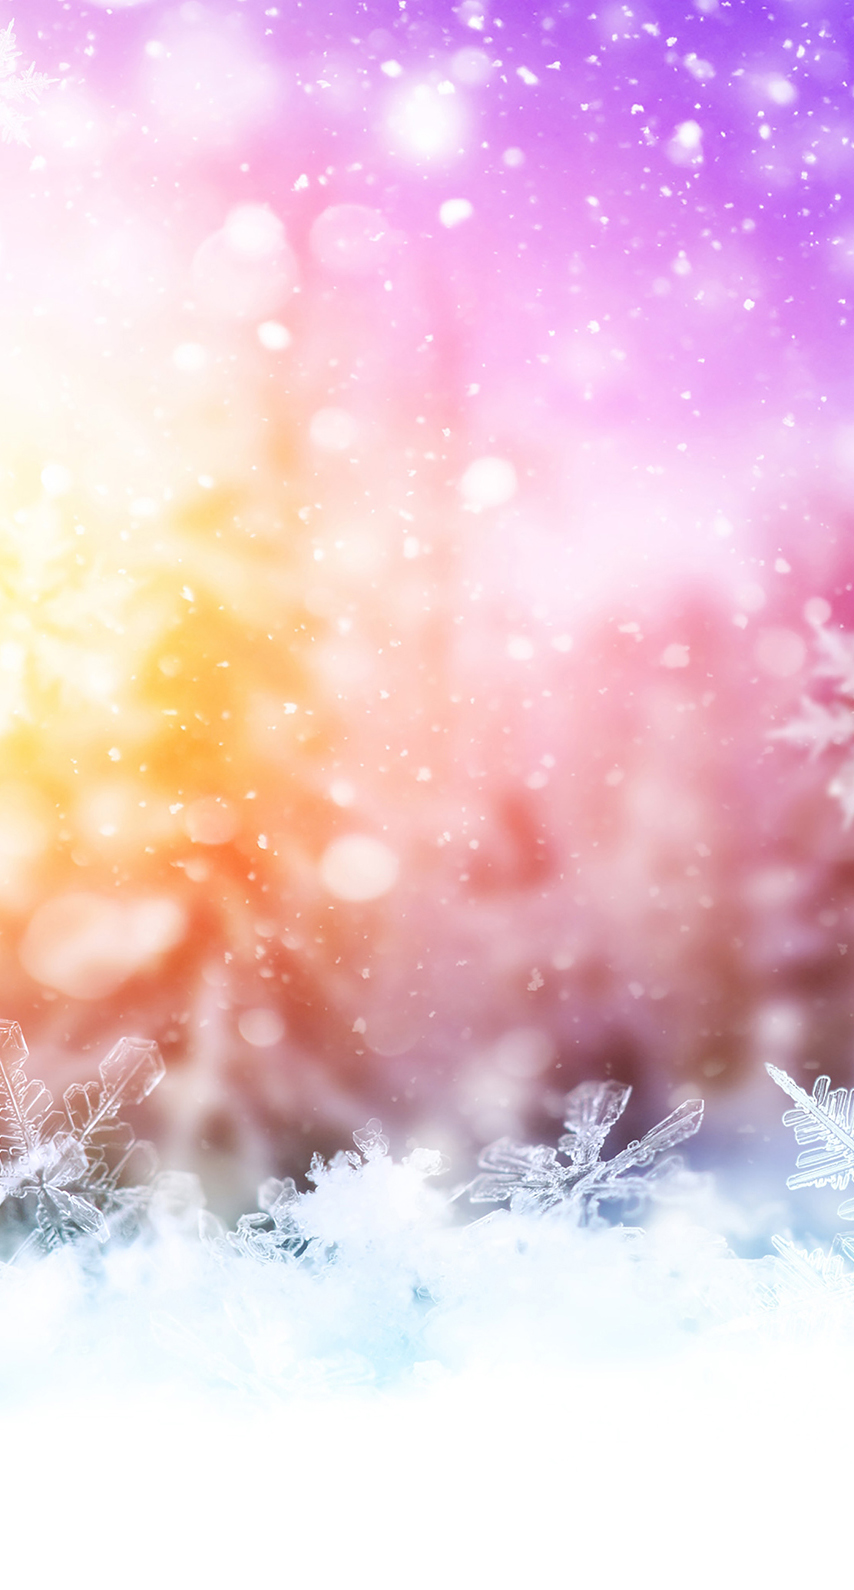 drop, abstract, snow, snowflake, bright, celebration, design, background, insubstantial, desktop, blur